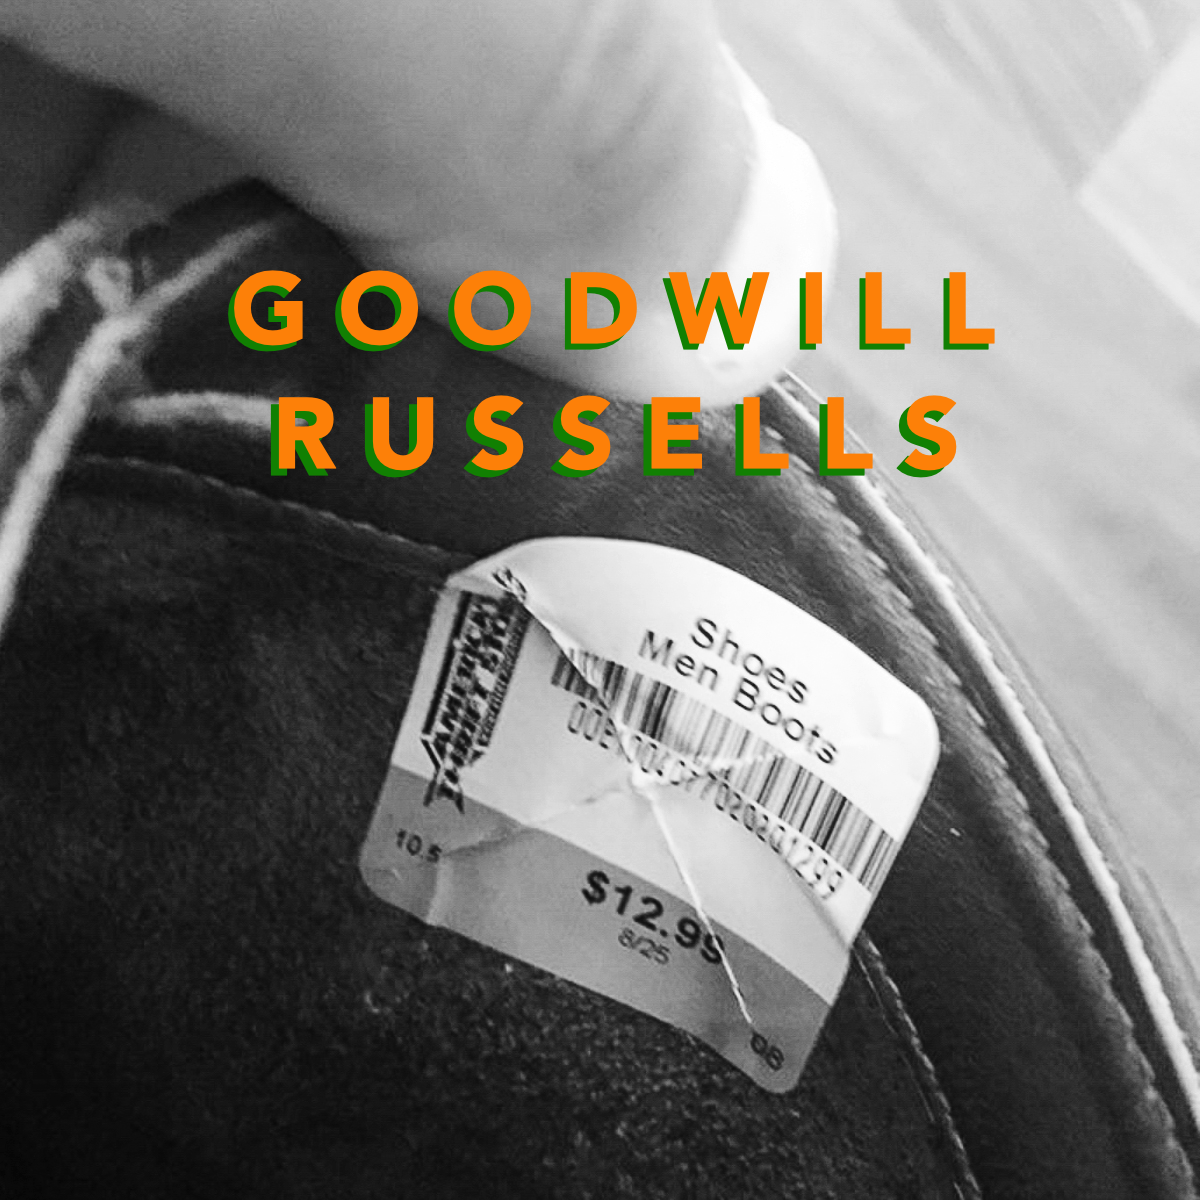 Goodwill Russells – Before and After